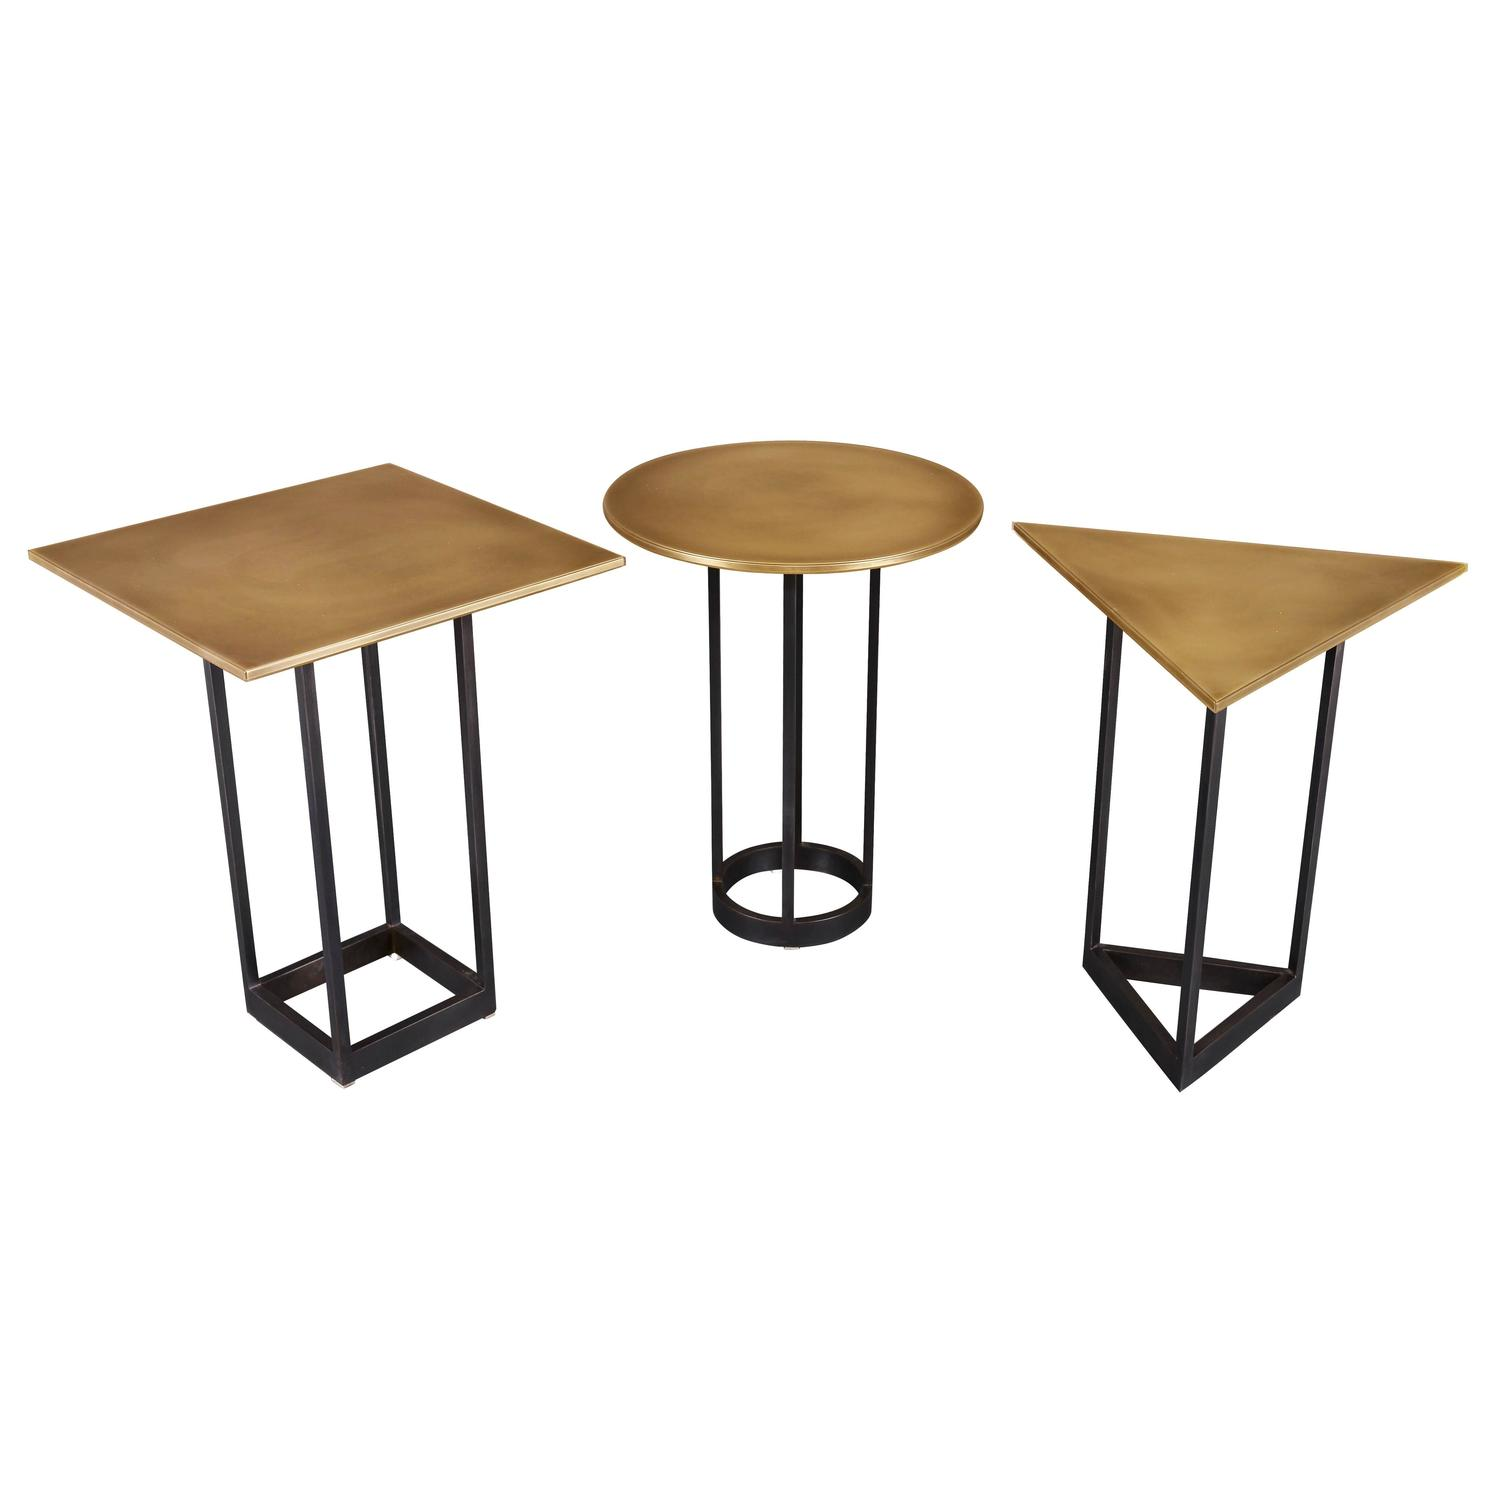 Gotham End Tables Customizable Metal and Resin For Sale